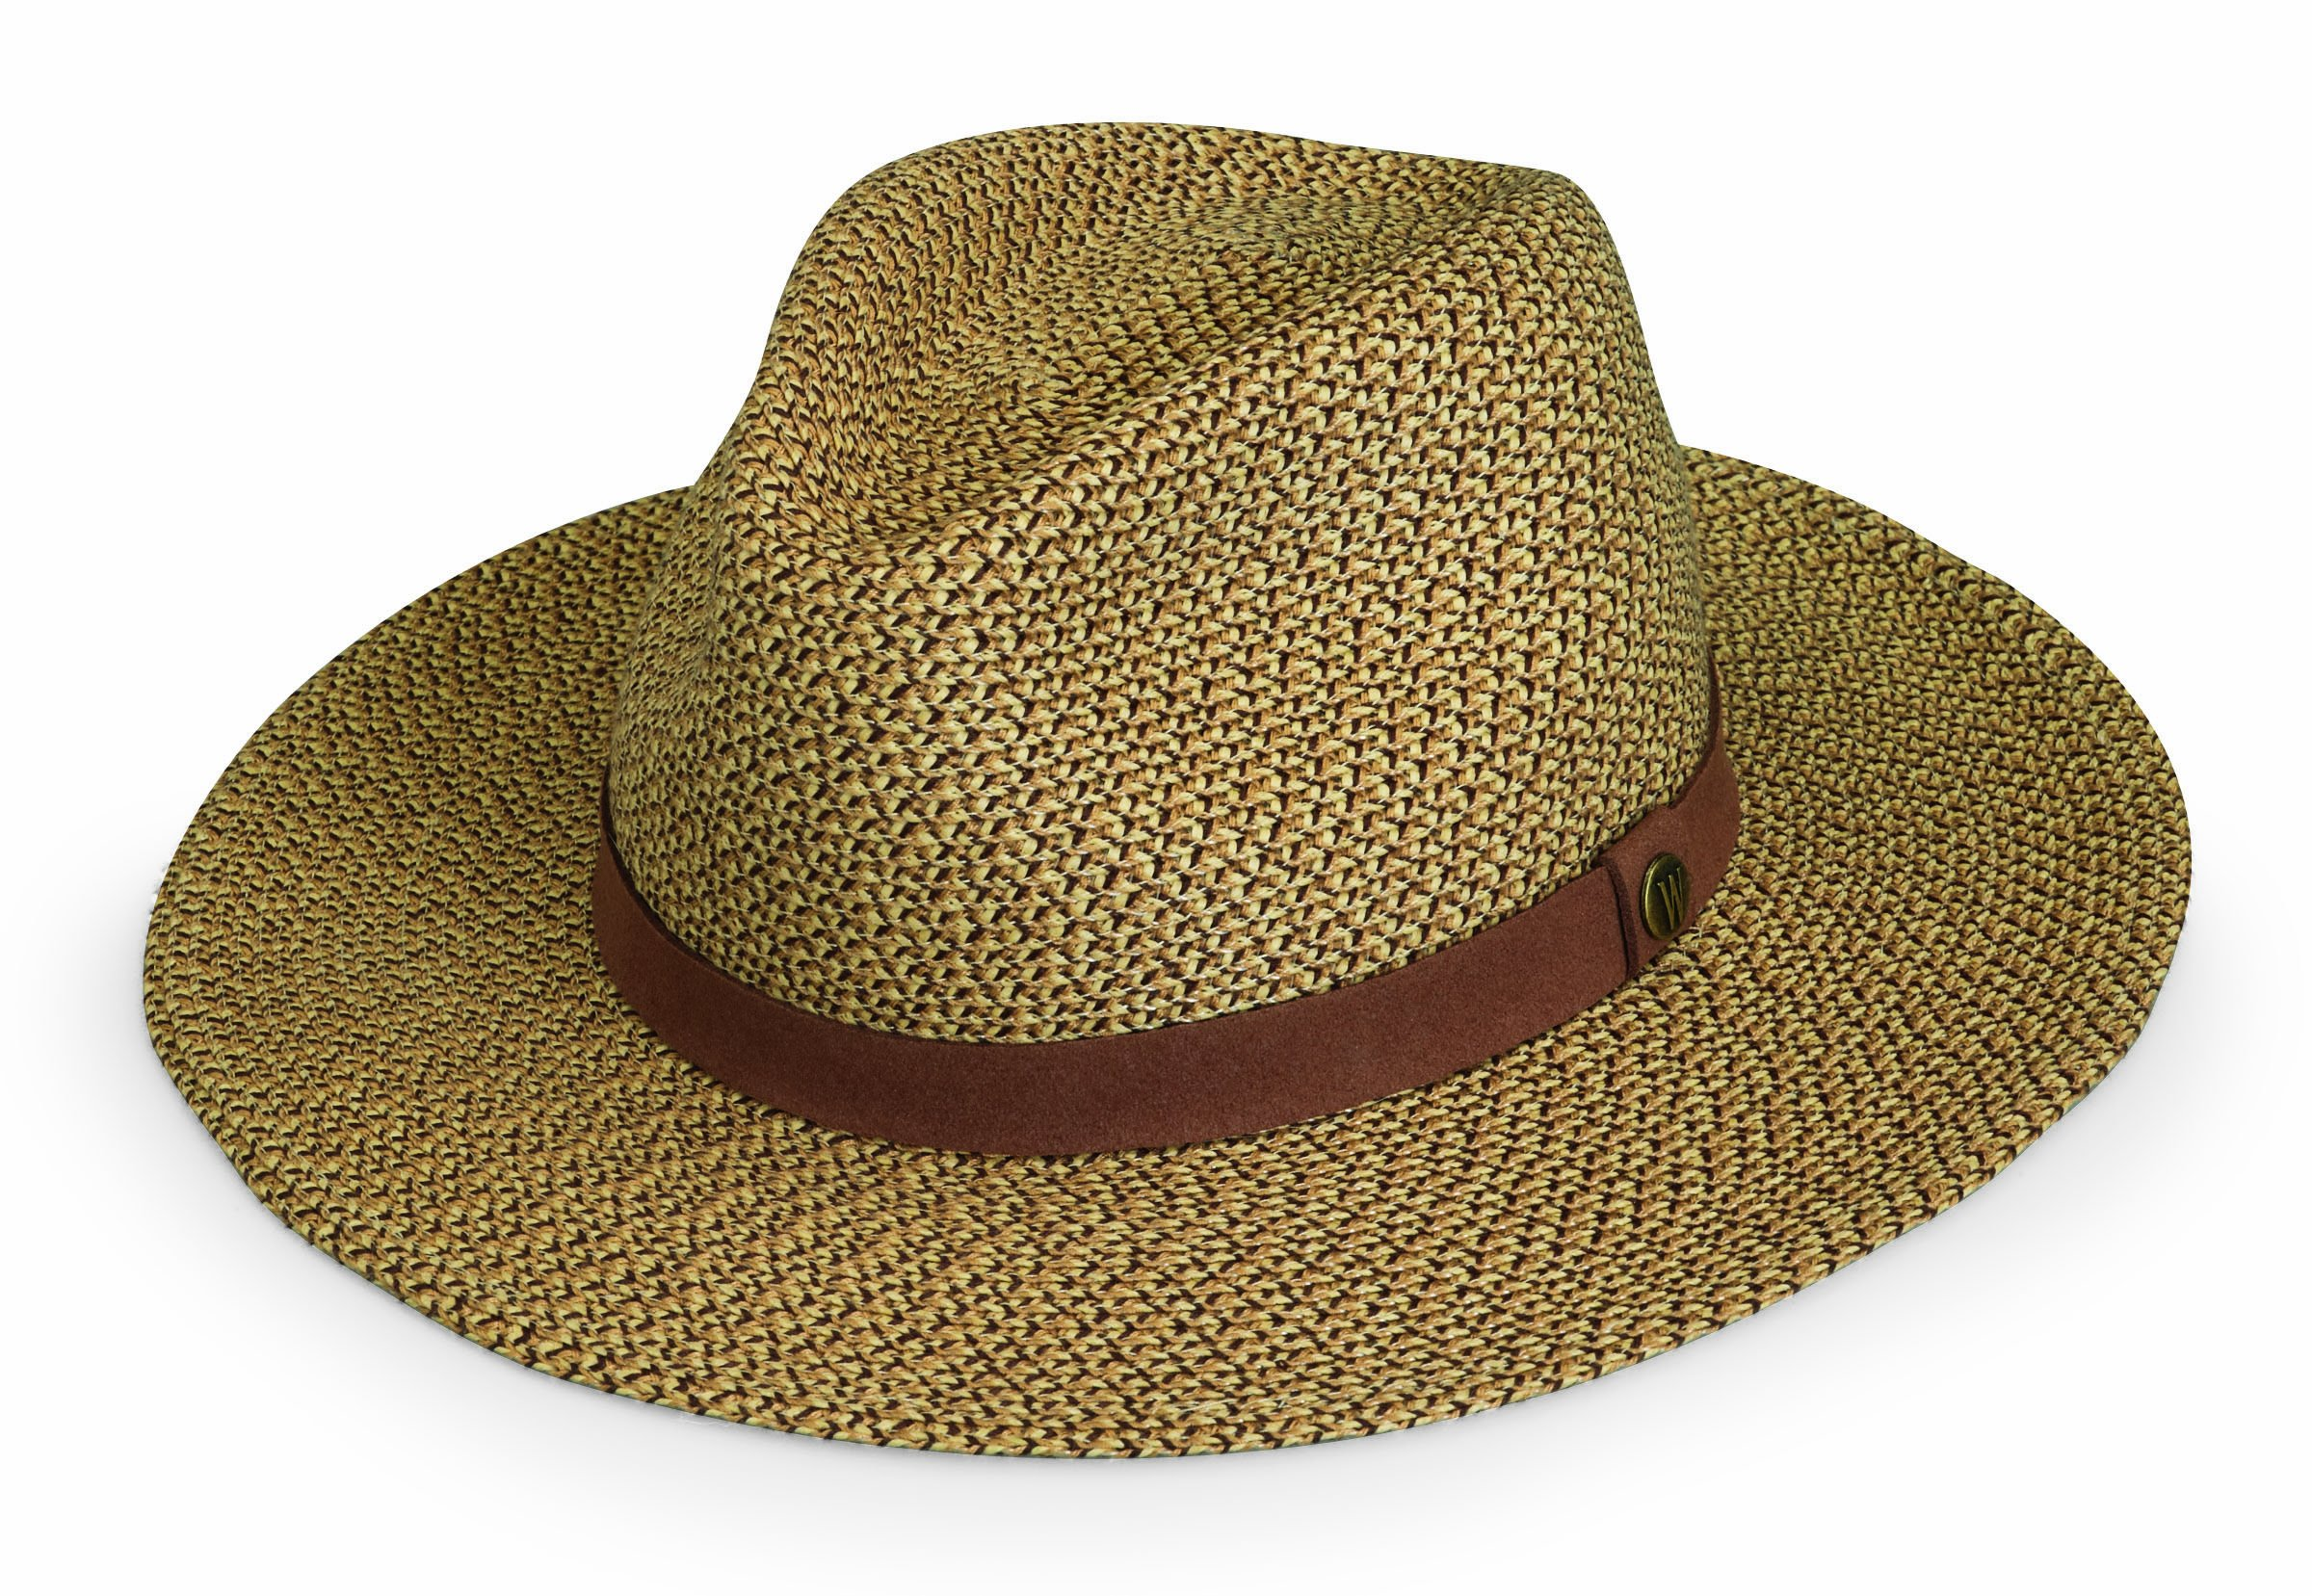 08d092f34a7 Wallaroo Men s Outback Sun Hat - 100% Paper Braid - Classy Style ...